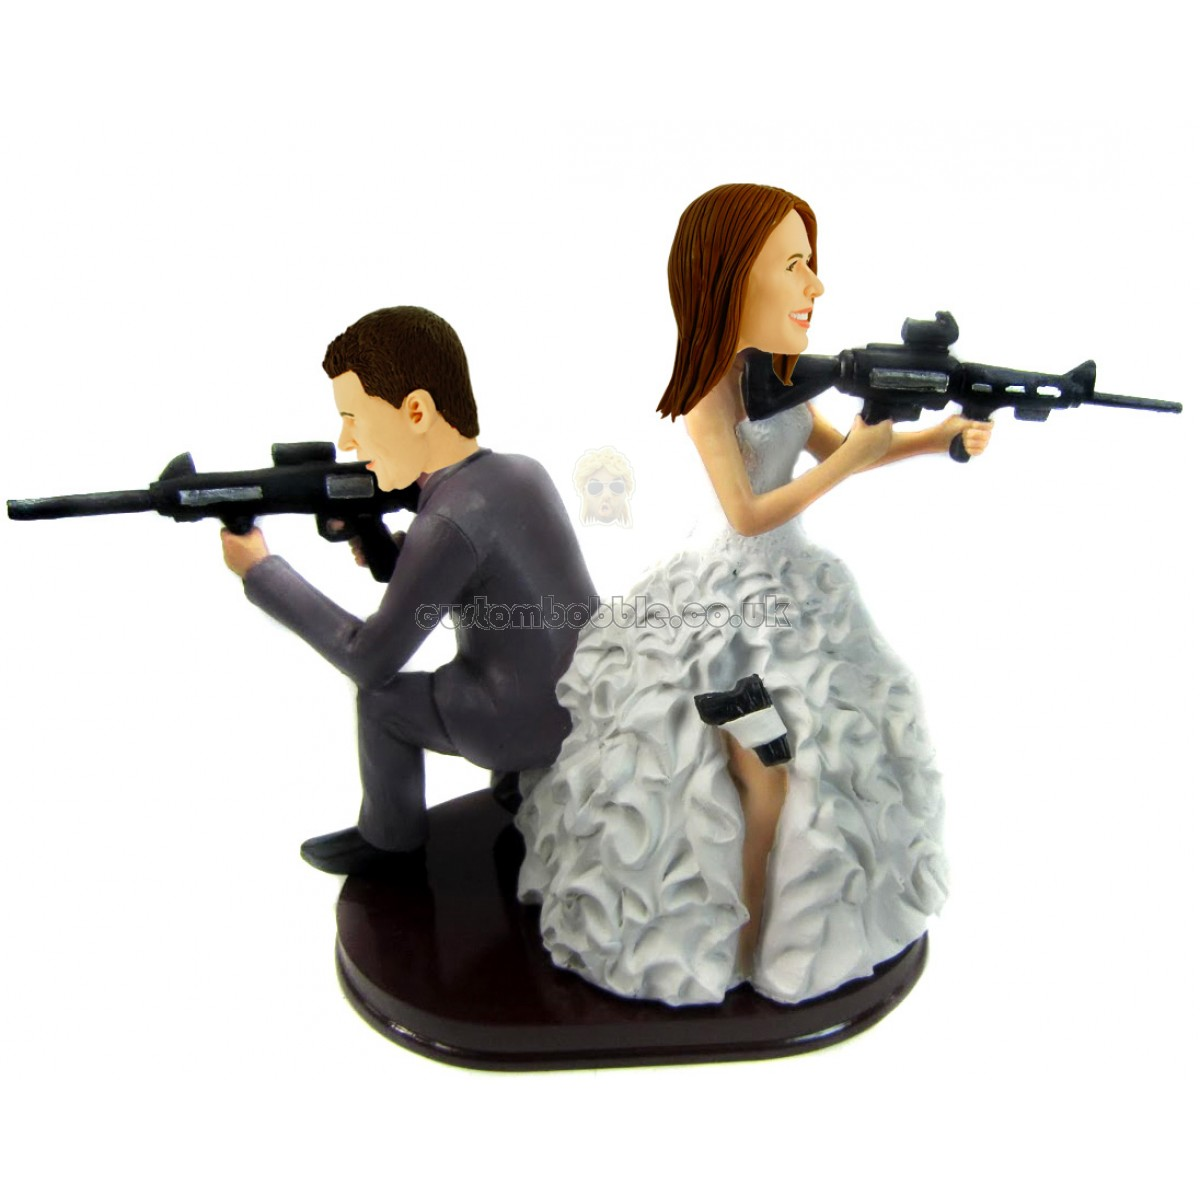 snipe wedding cake topper personalised - Couple & Wedding - All products